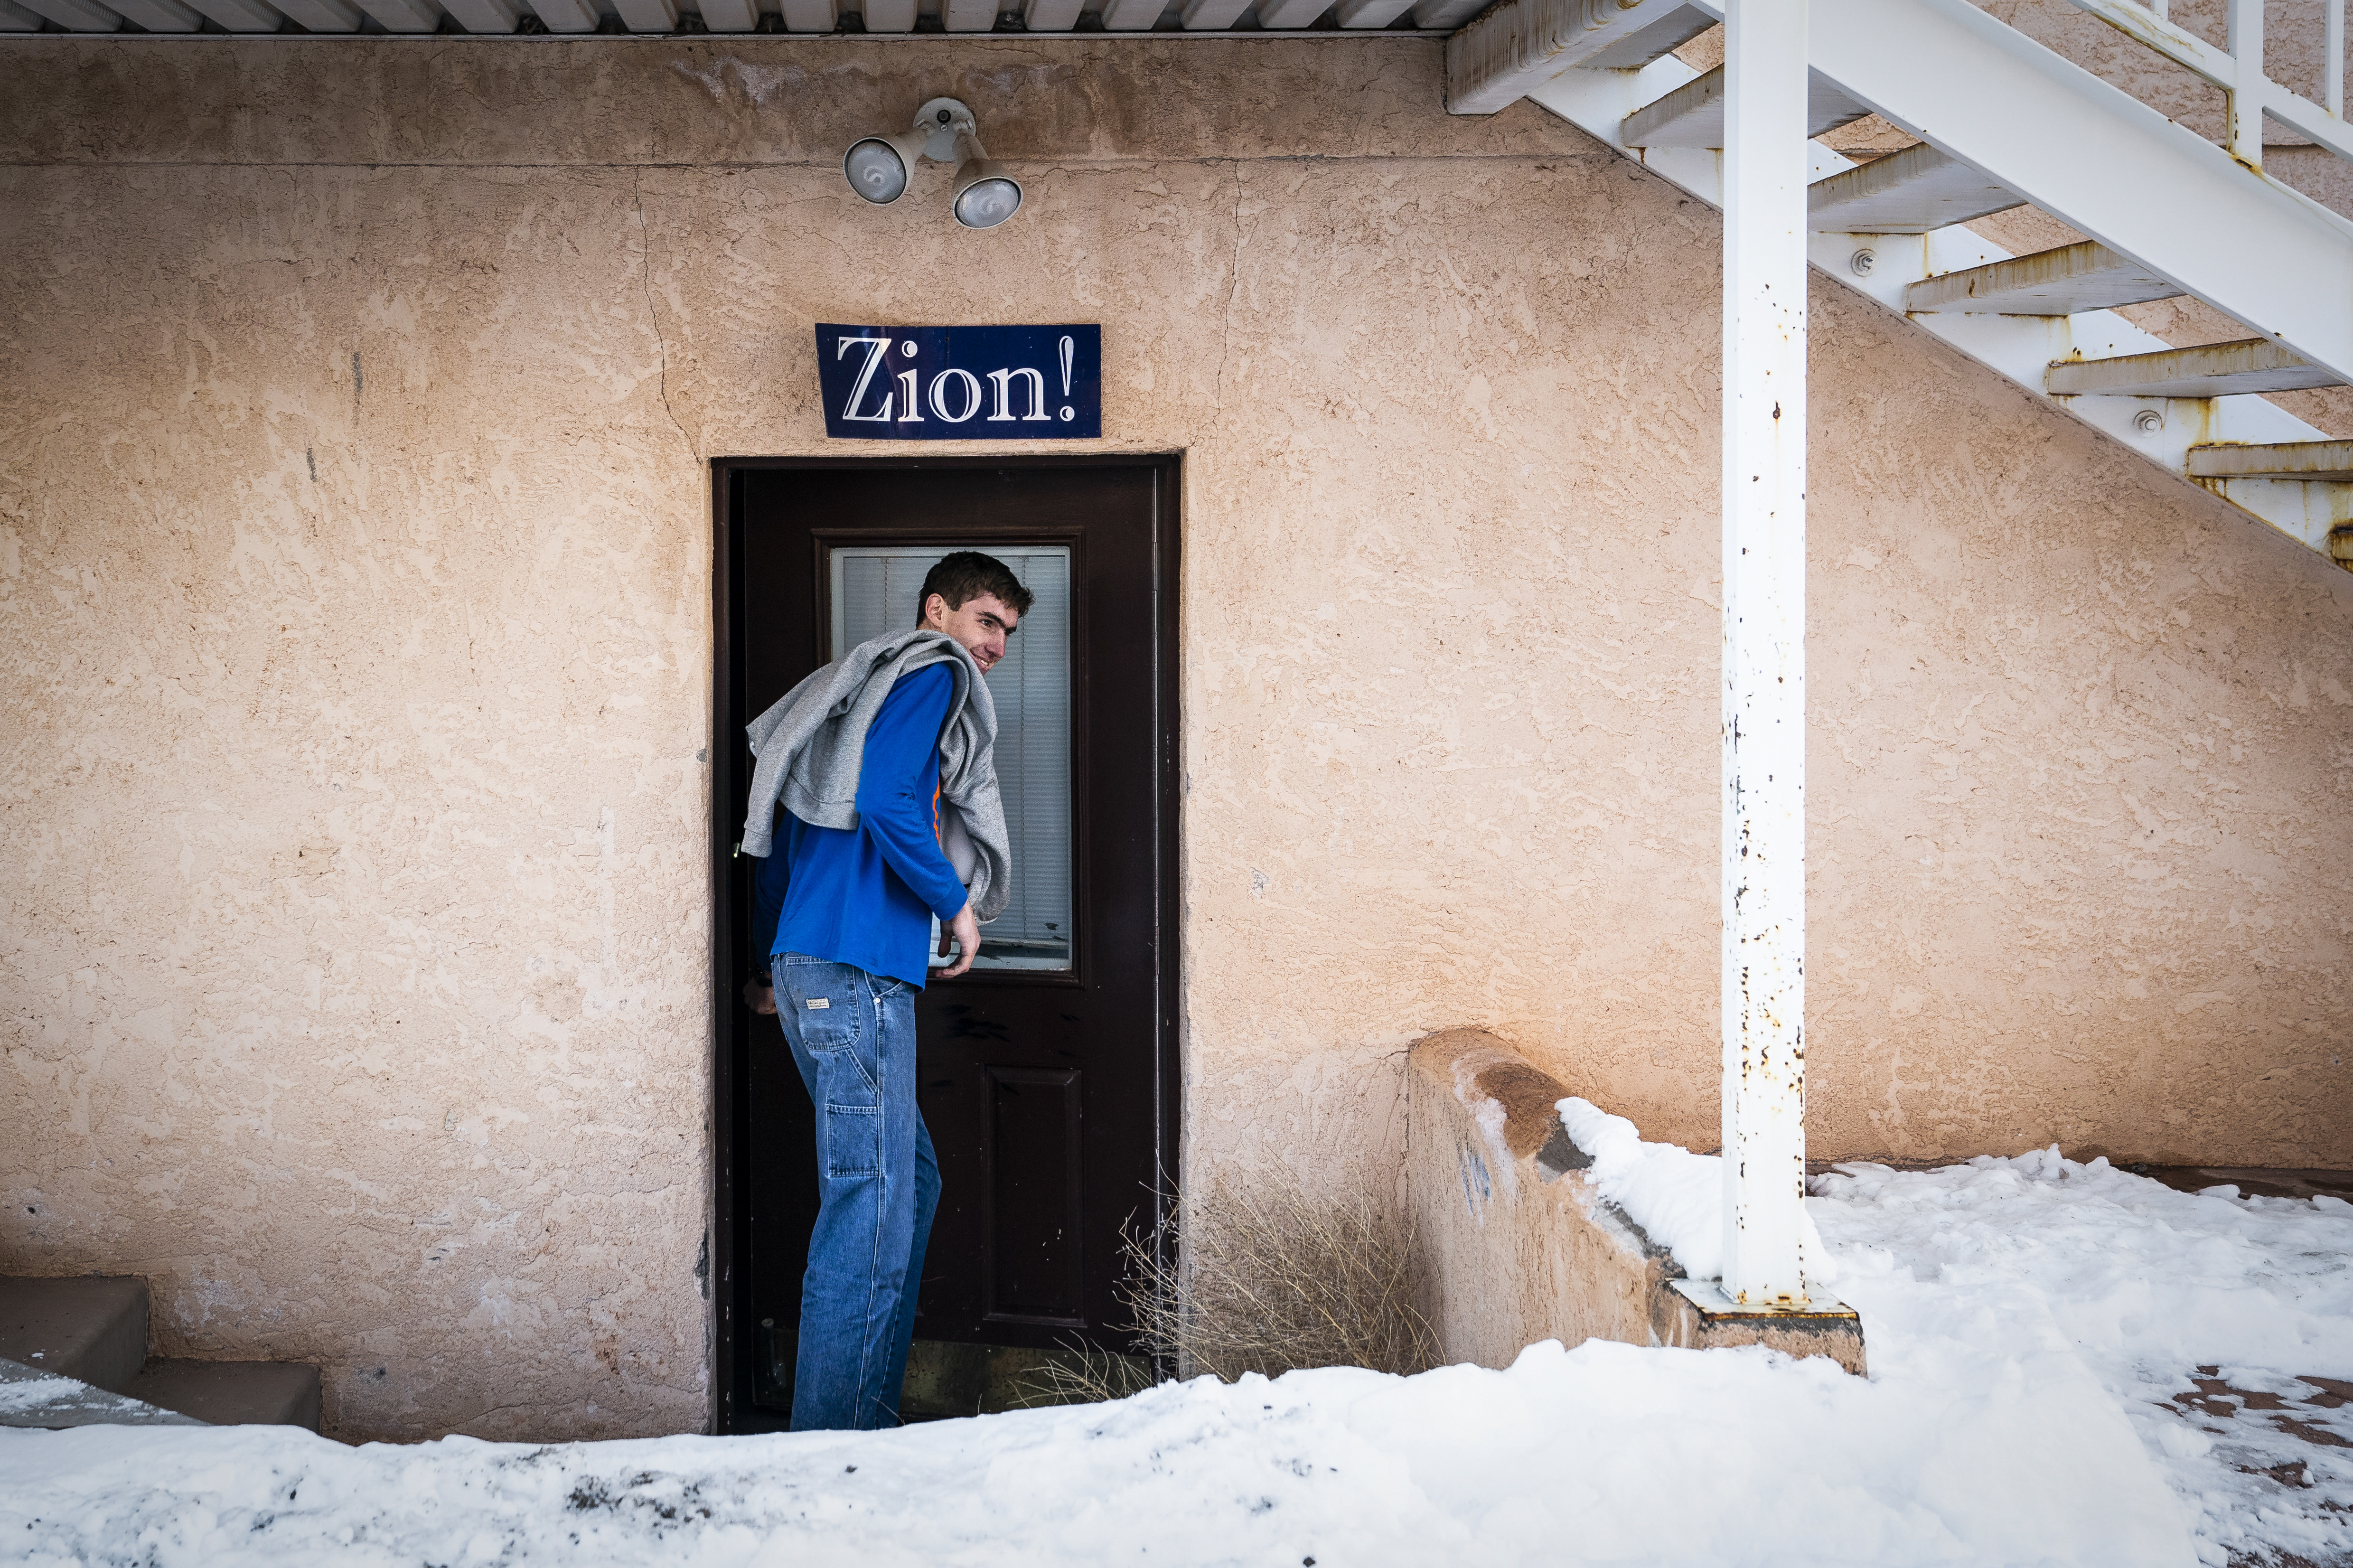 James Jeffs goes to his room, framed by a Zion sign, at his family's home. Many people still loyal to the FLDS hang Zion placards over their homes. MUST CREDIT: Washington Post photo by Jabin Botsford.